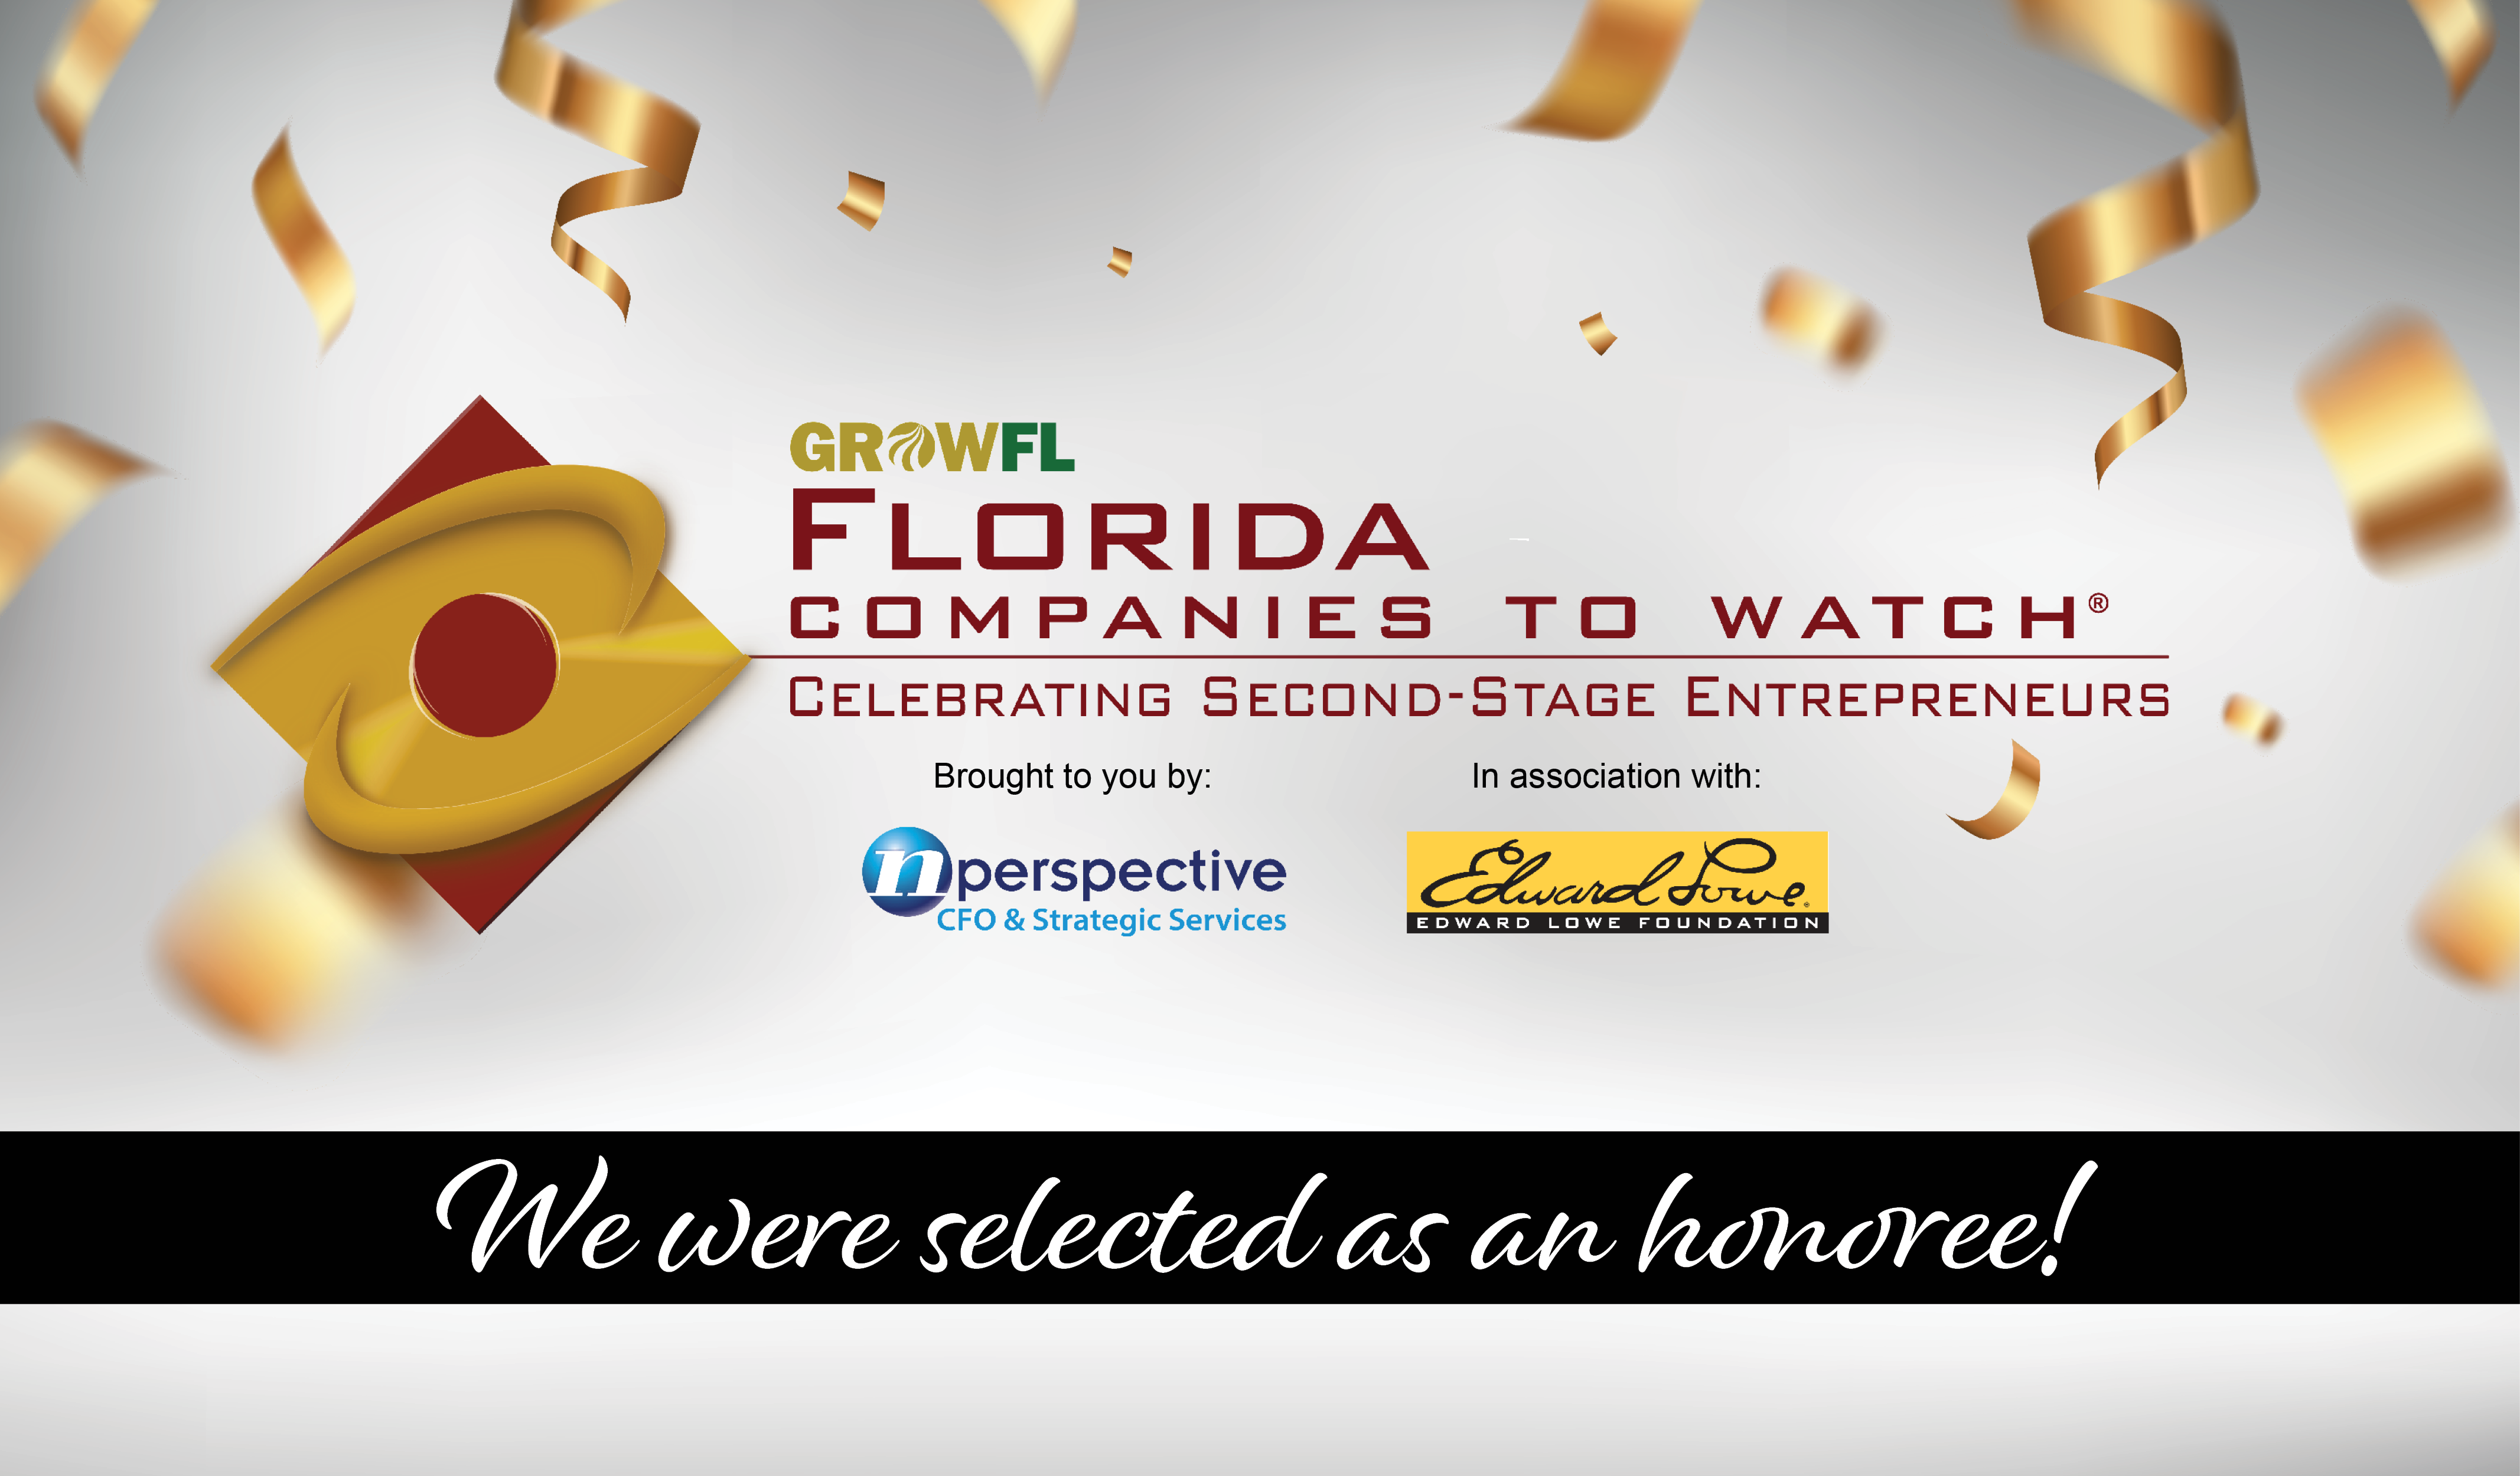 MPLT Healthcare Named a 2020 GrowFL Florida Companies to Watch Honoree